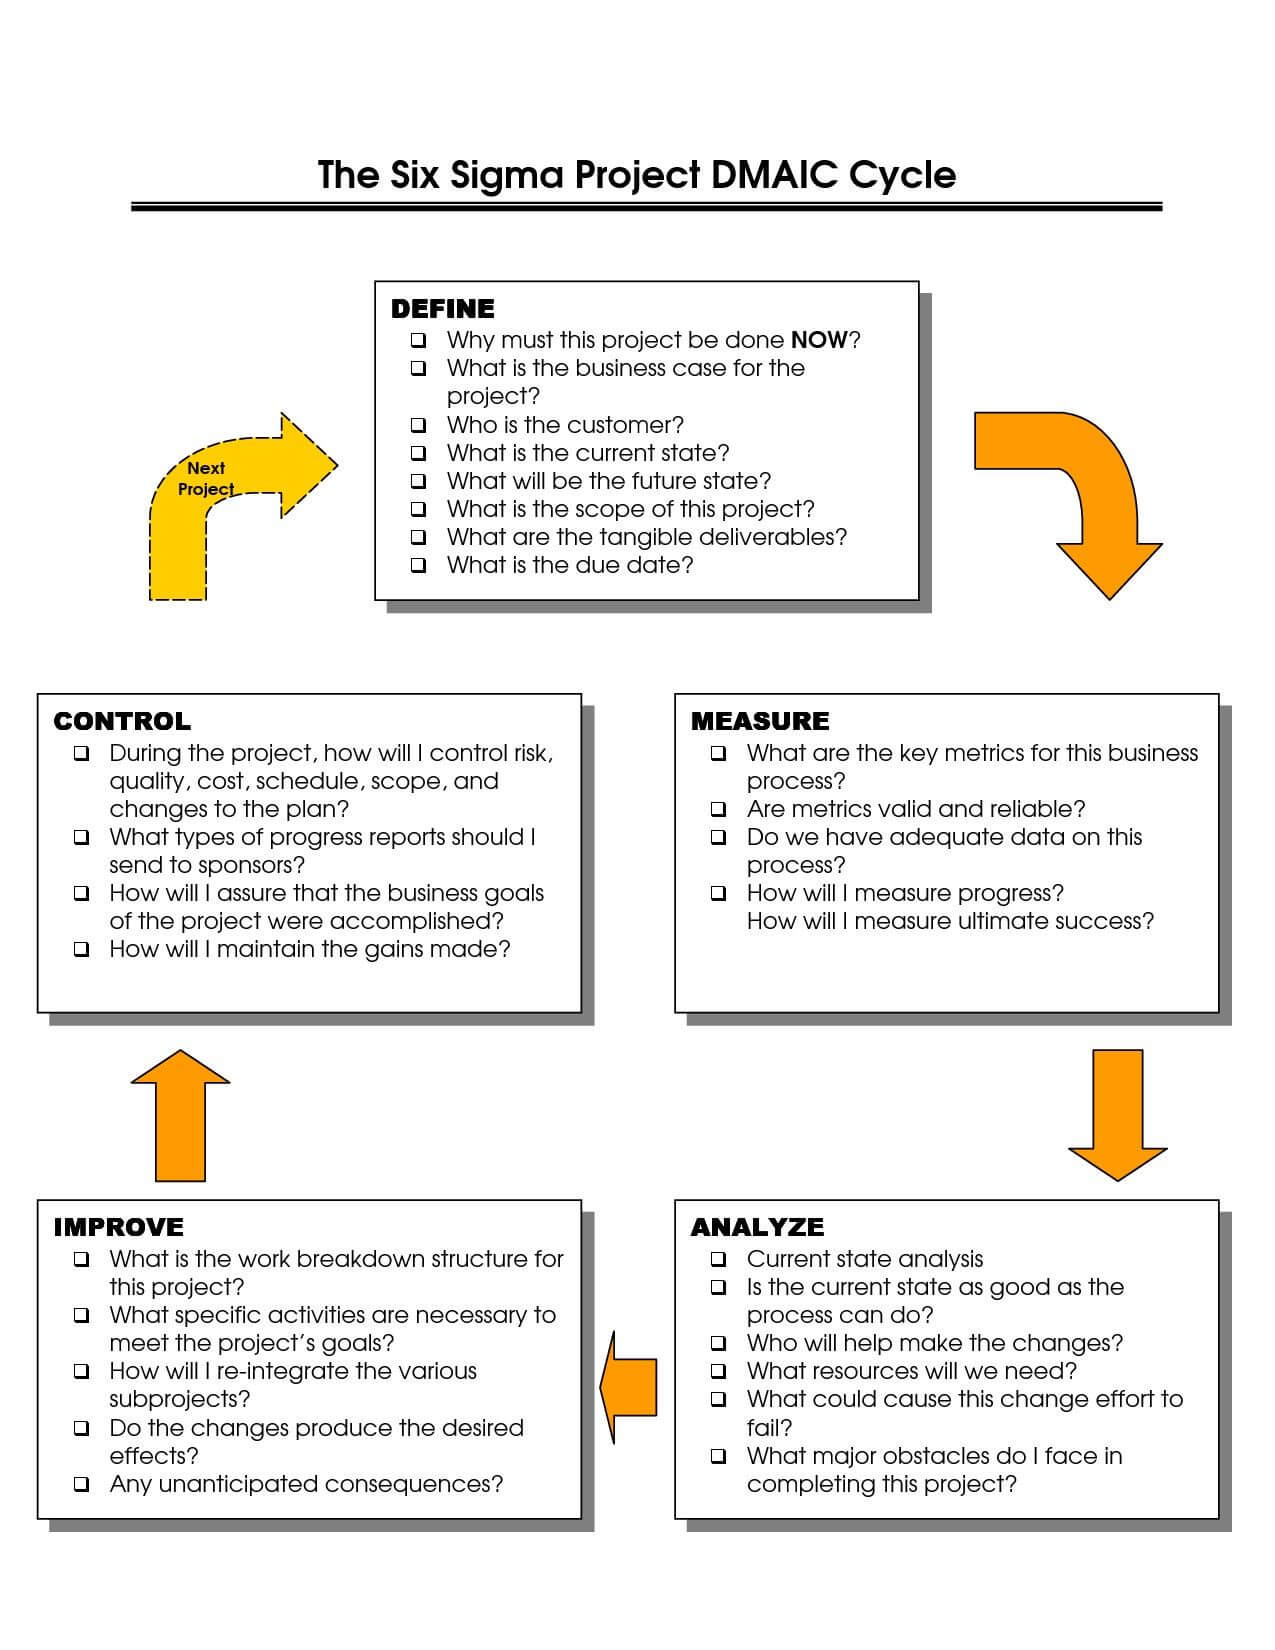 Dmaic Report Template Cool Best Photos Of Six Sigma Dmaic For Dmaic Report Template